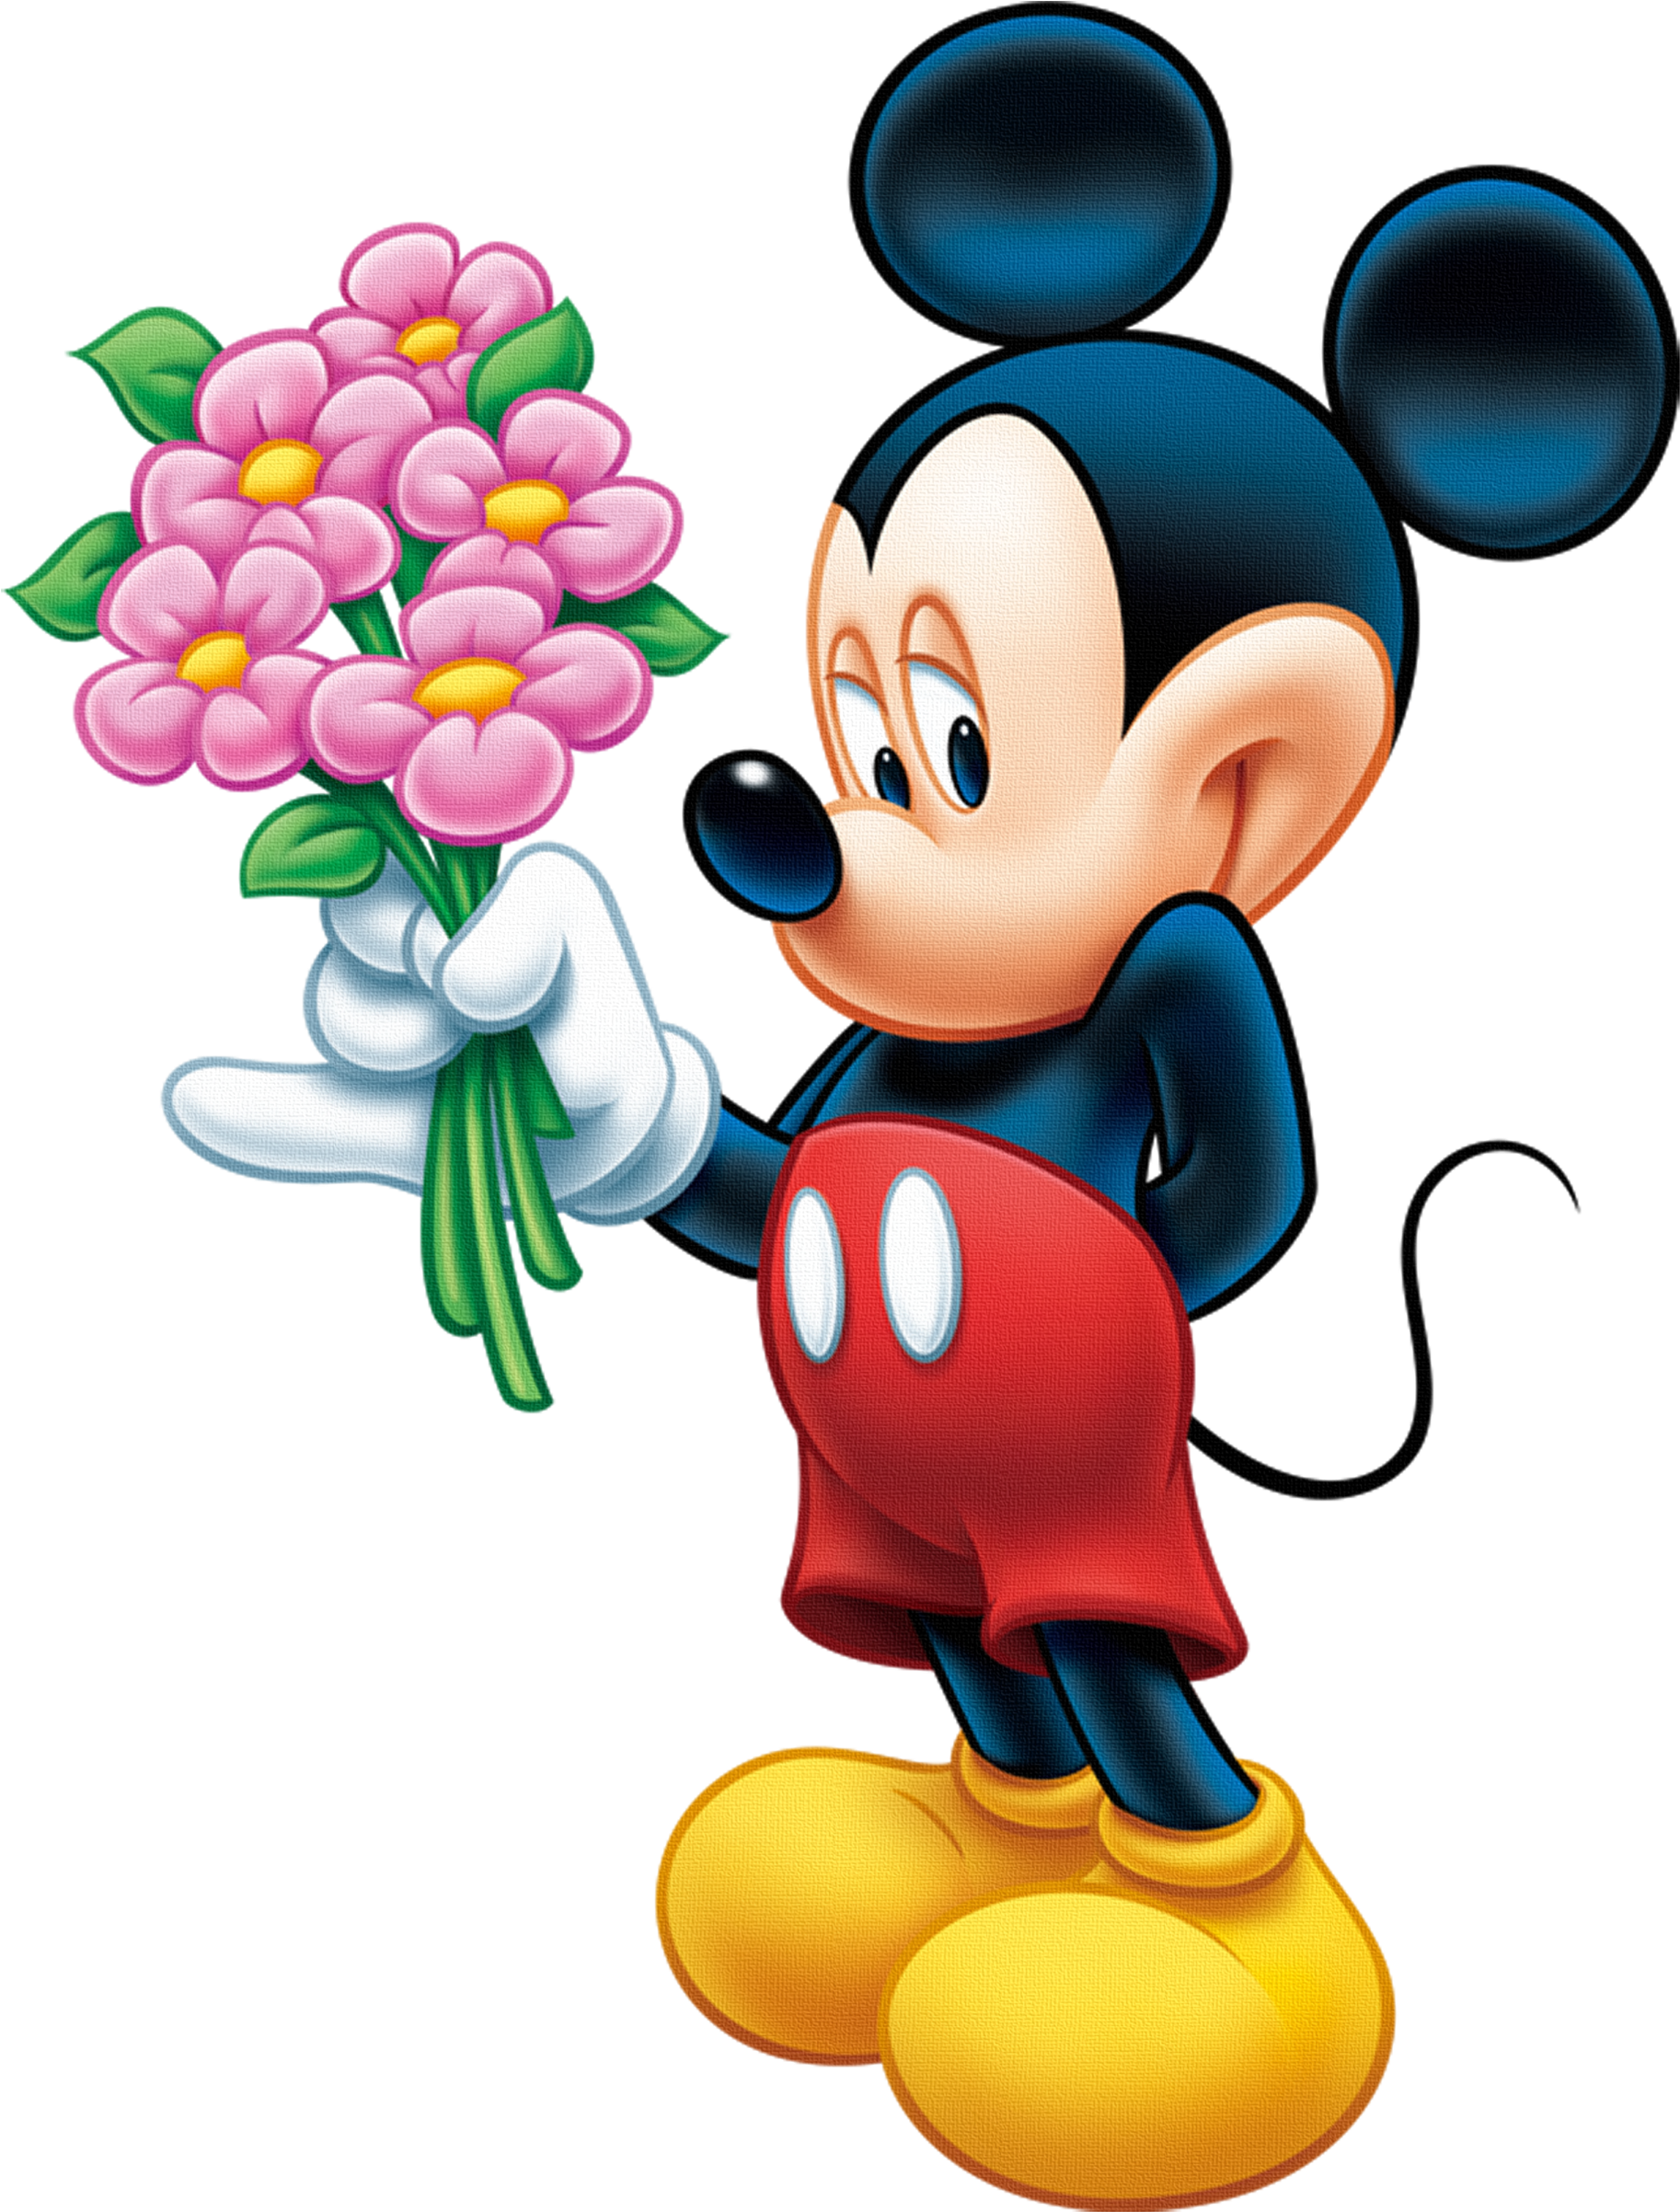 image royalty free stock Yes clipart mickey mouse. Good afternoon to you